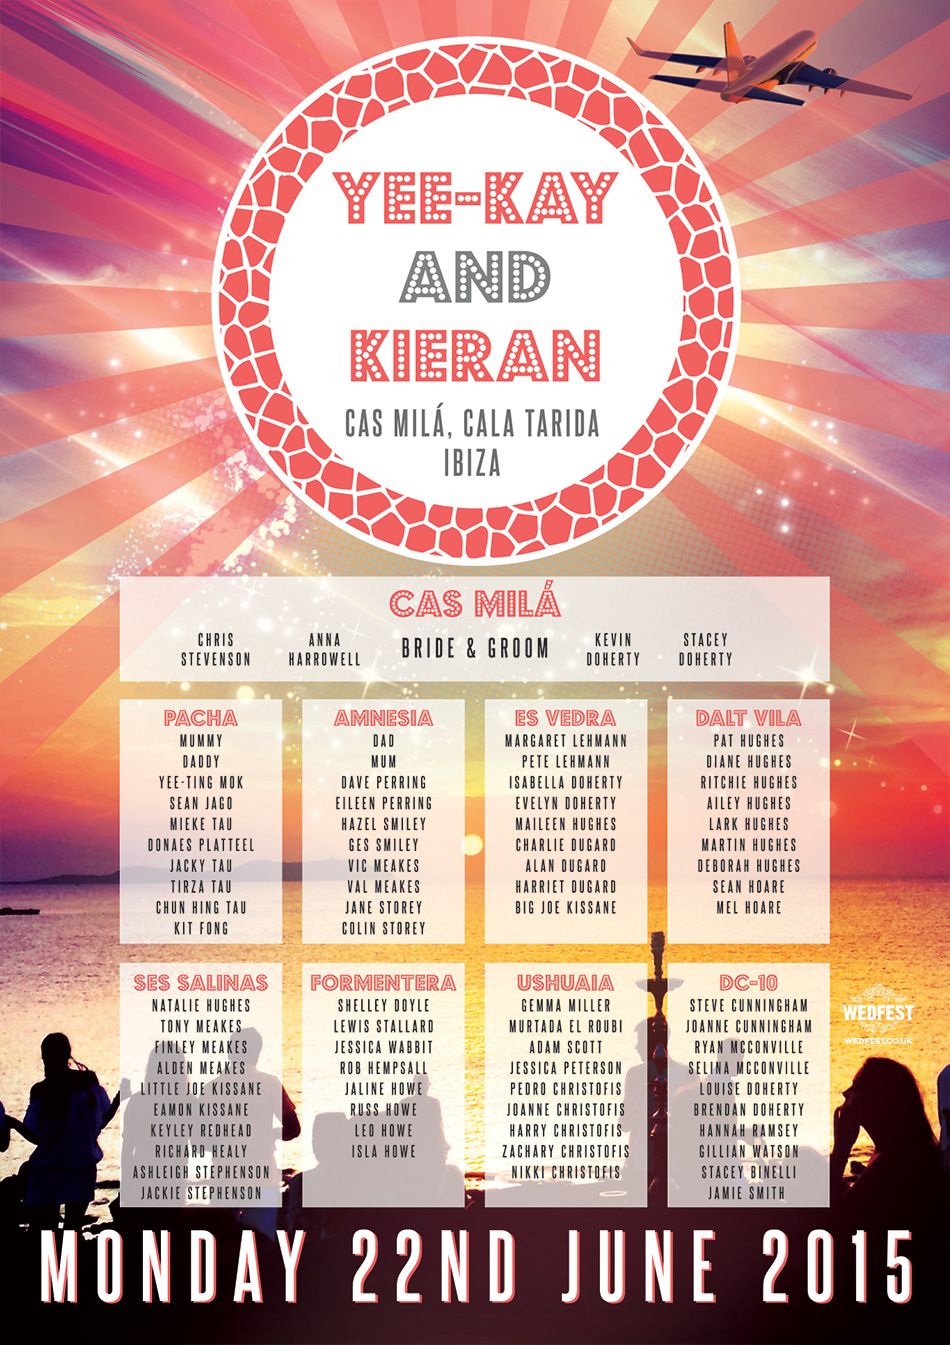 Cas Mila, Cala Tarida, Ibiza Wedding Seating Plan